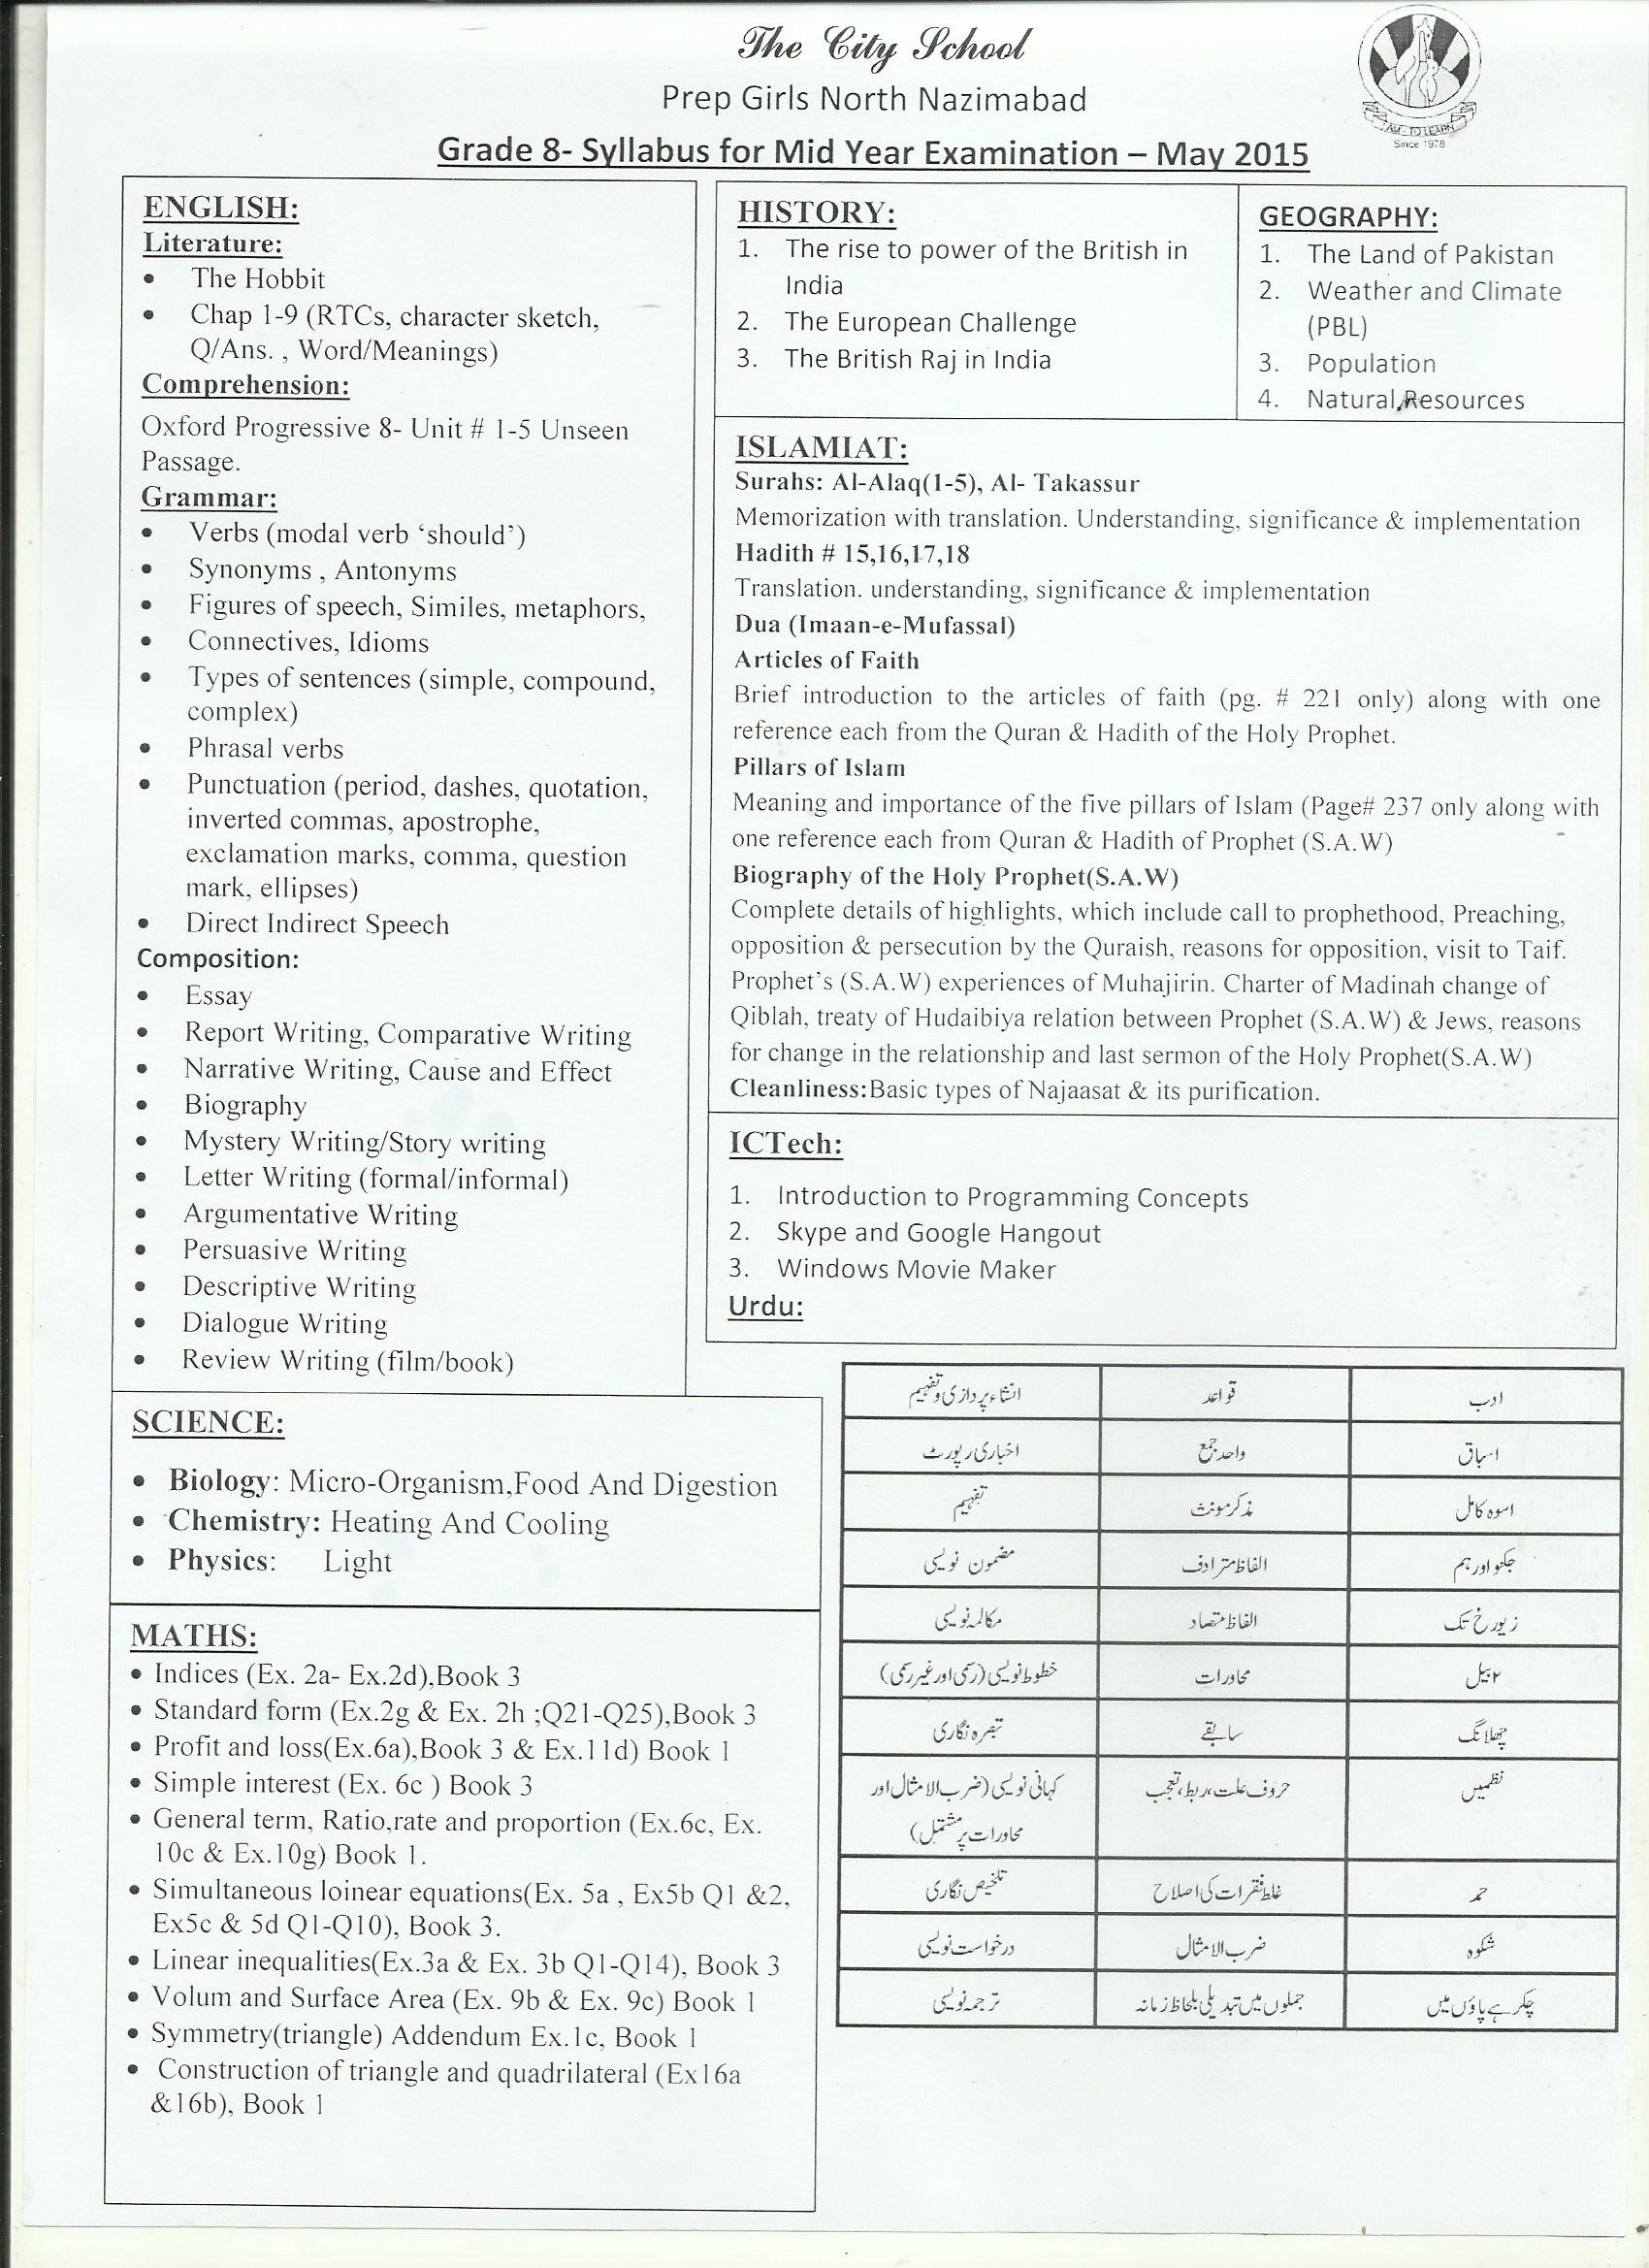 Syllabus And Timetable For Mid Year Examination